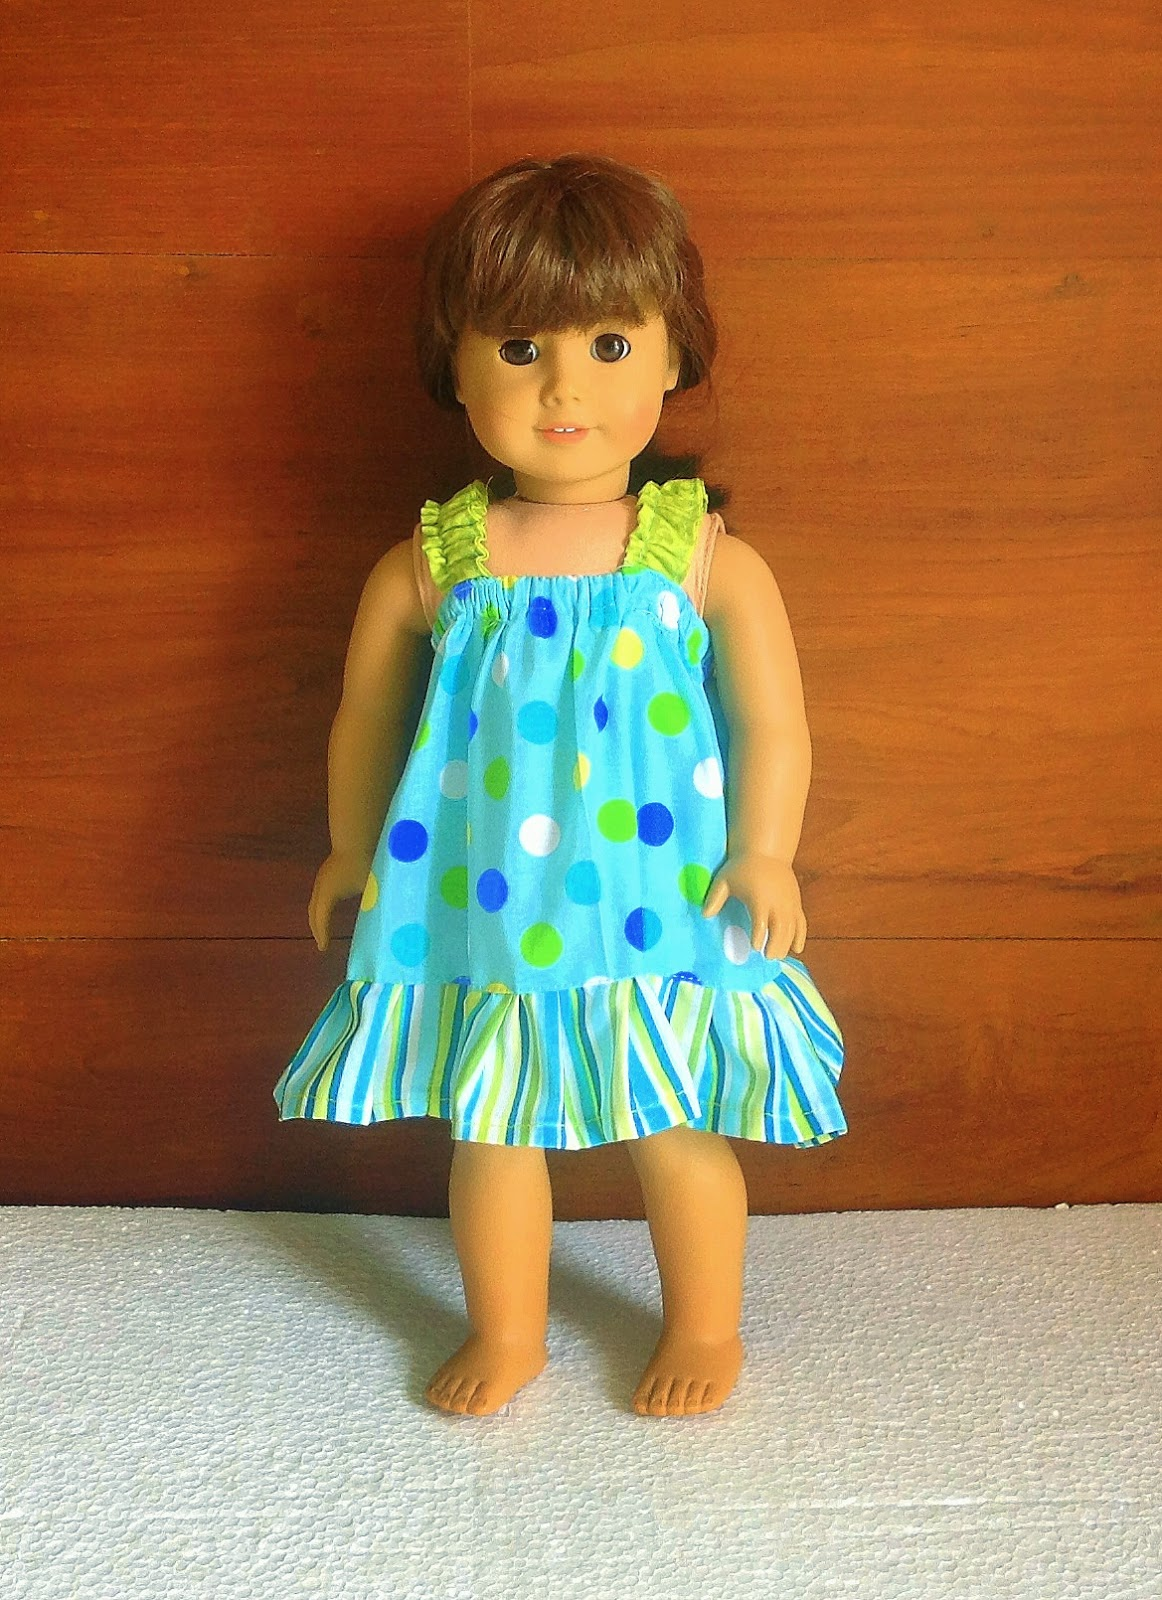 Sewing patterns for girls dresses and skirts easy sundress sewing this is the simplest dress you can sew for your little girls american 18 inch doll this dress has no curved seams but only straight seams which can be jeuxipadfo Images